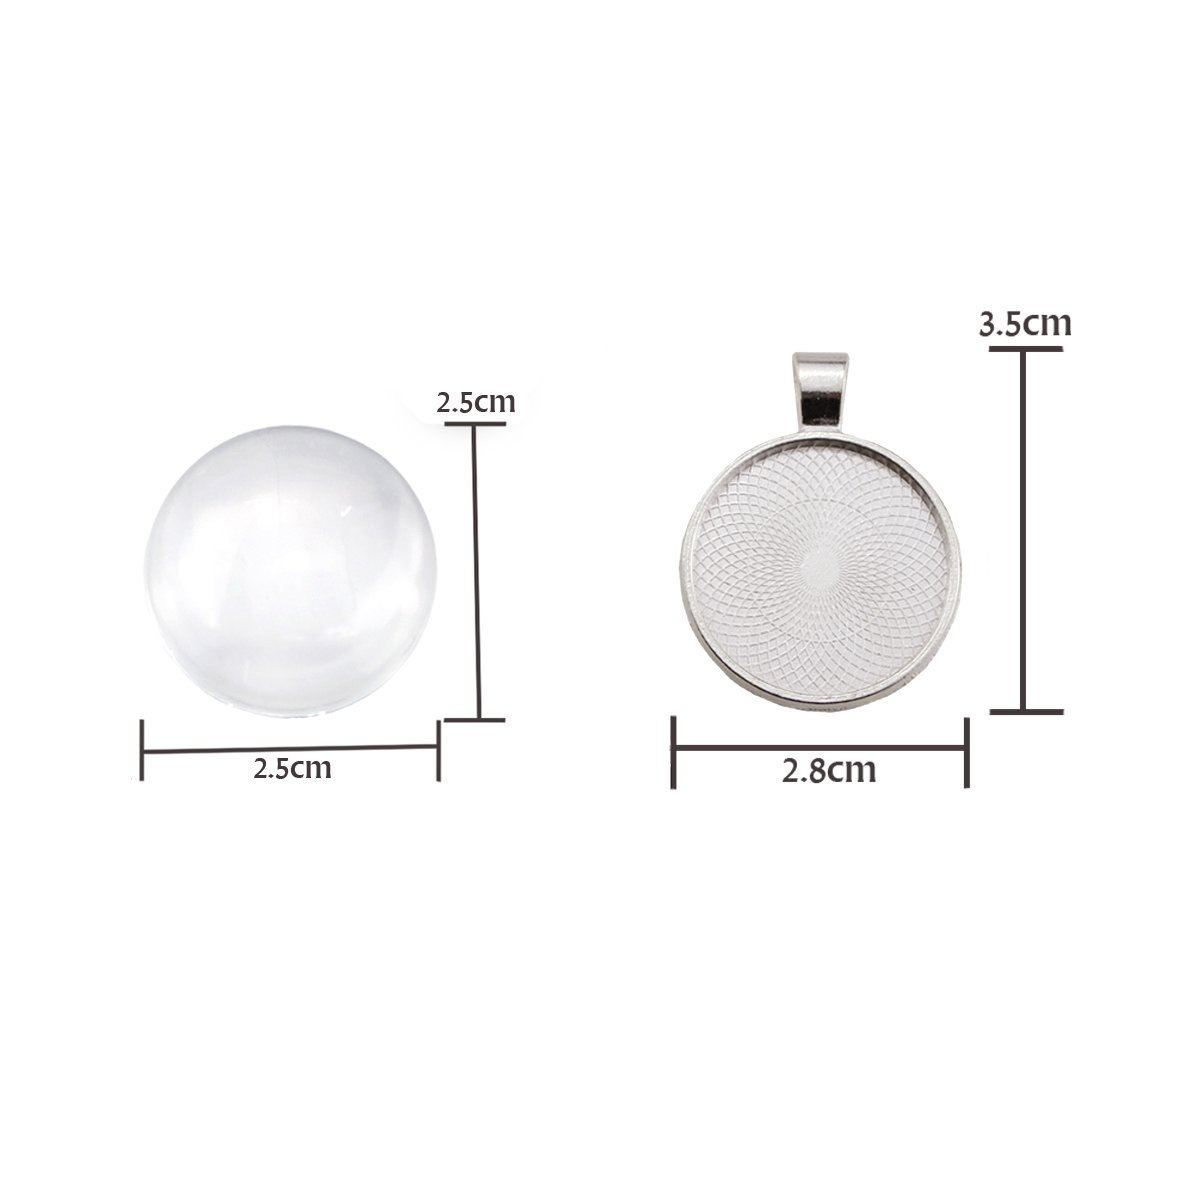 Non-calibrated Round for Photo Pendant Craft Jewelry Making Silver, 30mm Oopsu 40 Pieces Transparent Glass cabochons with 40 Silver Pendant Trays Clear Glass Dome cabochon